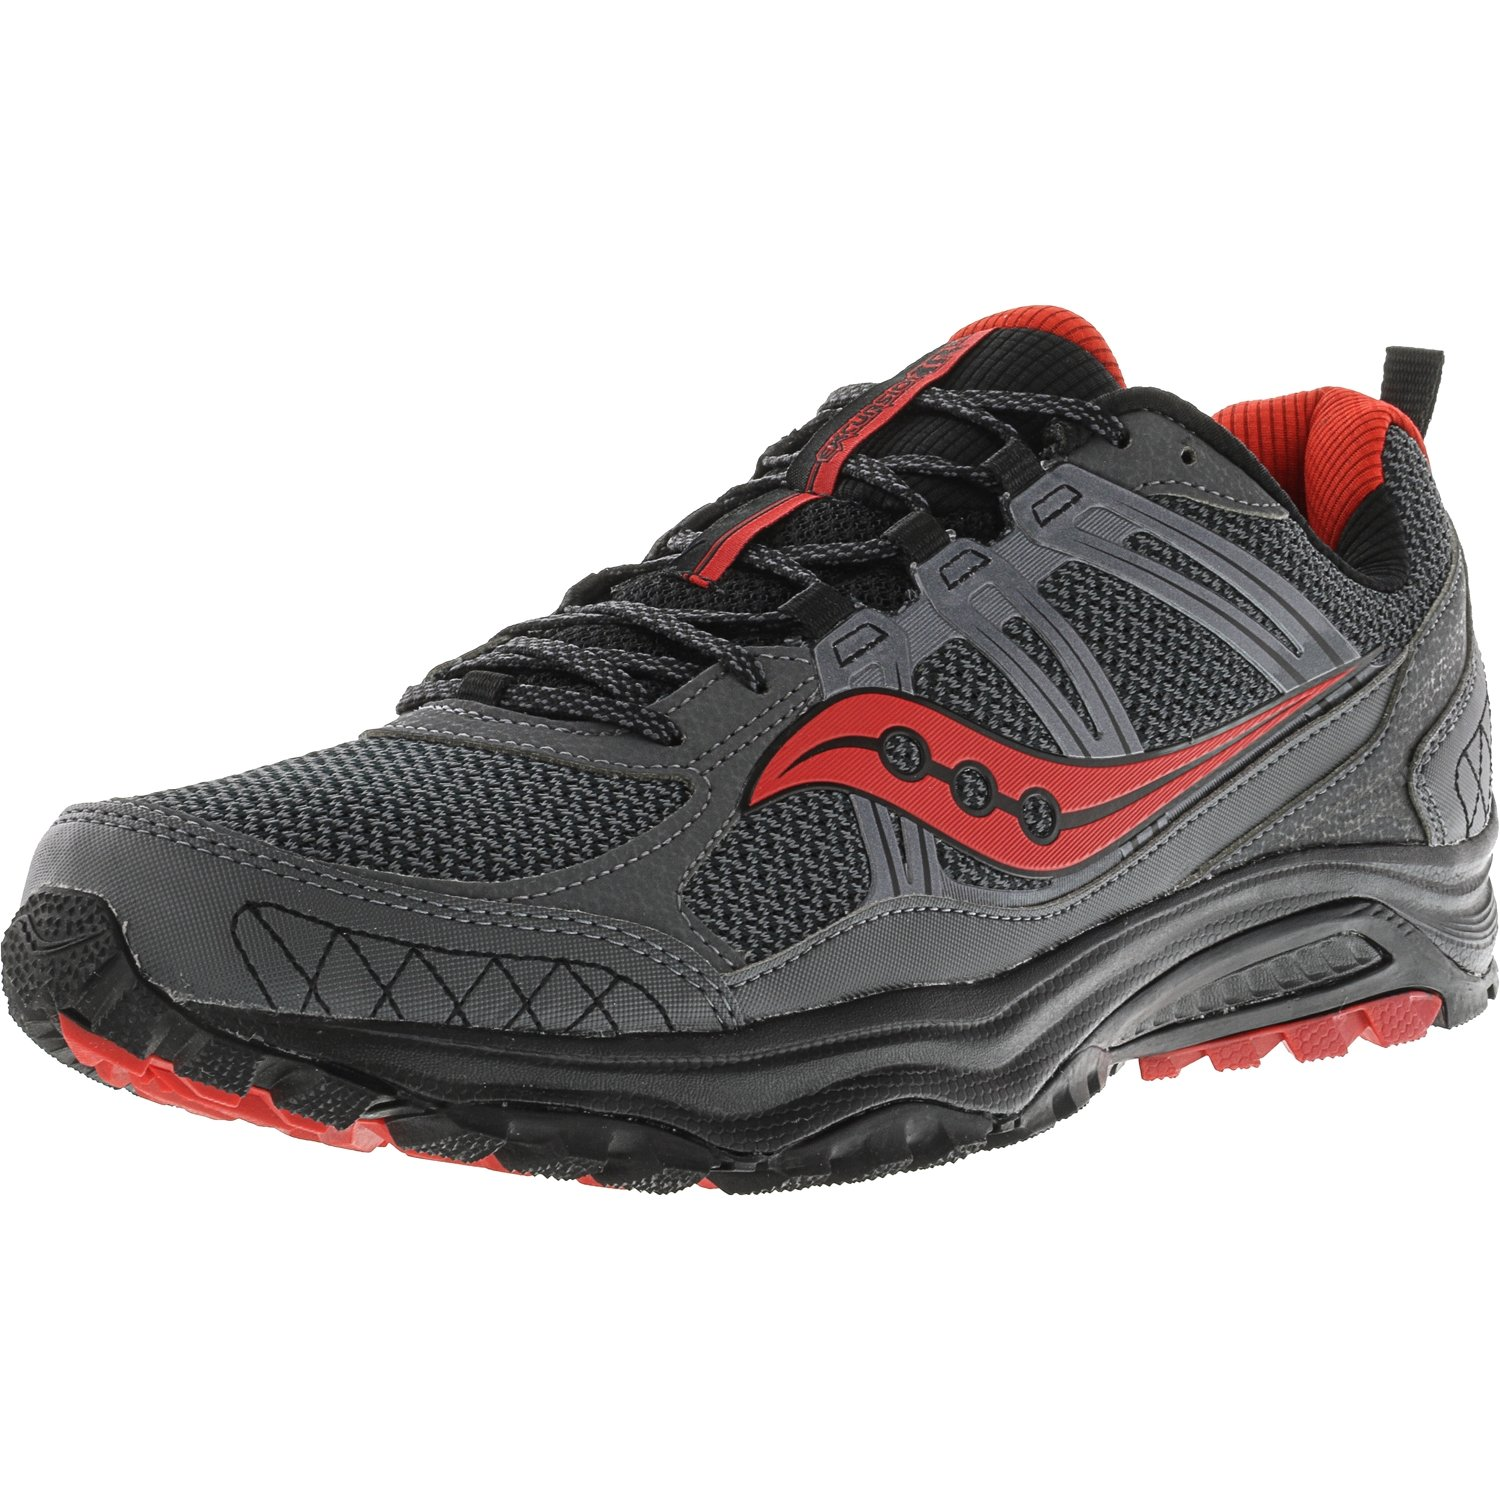 Saucony Grid Excursion TR10 Men's Trail Running Shoes (9, Grey/Black/Red) by Saucony (Image #1)